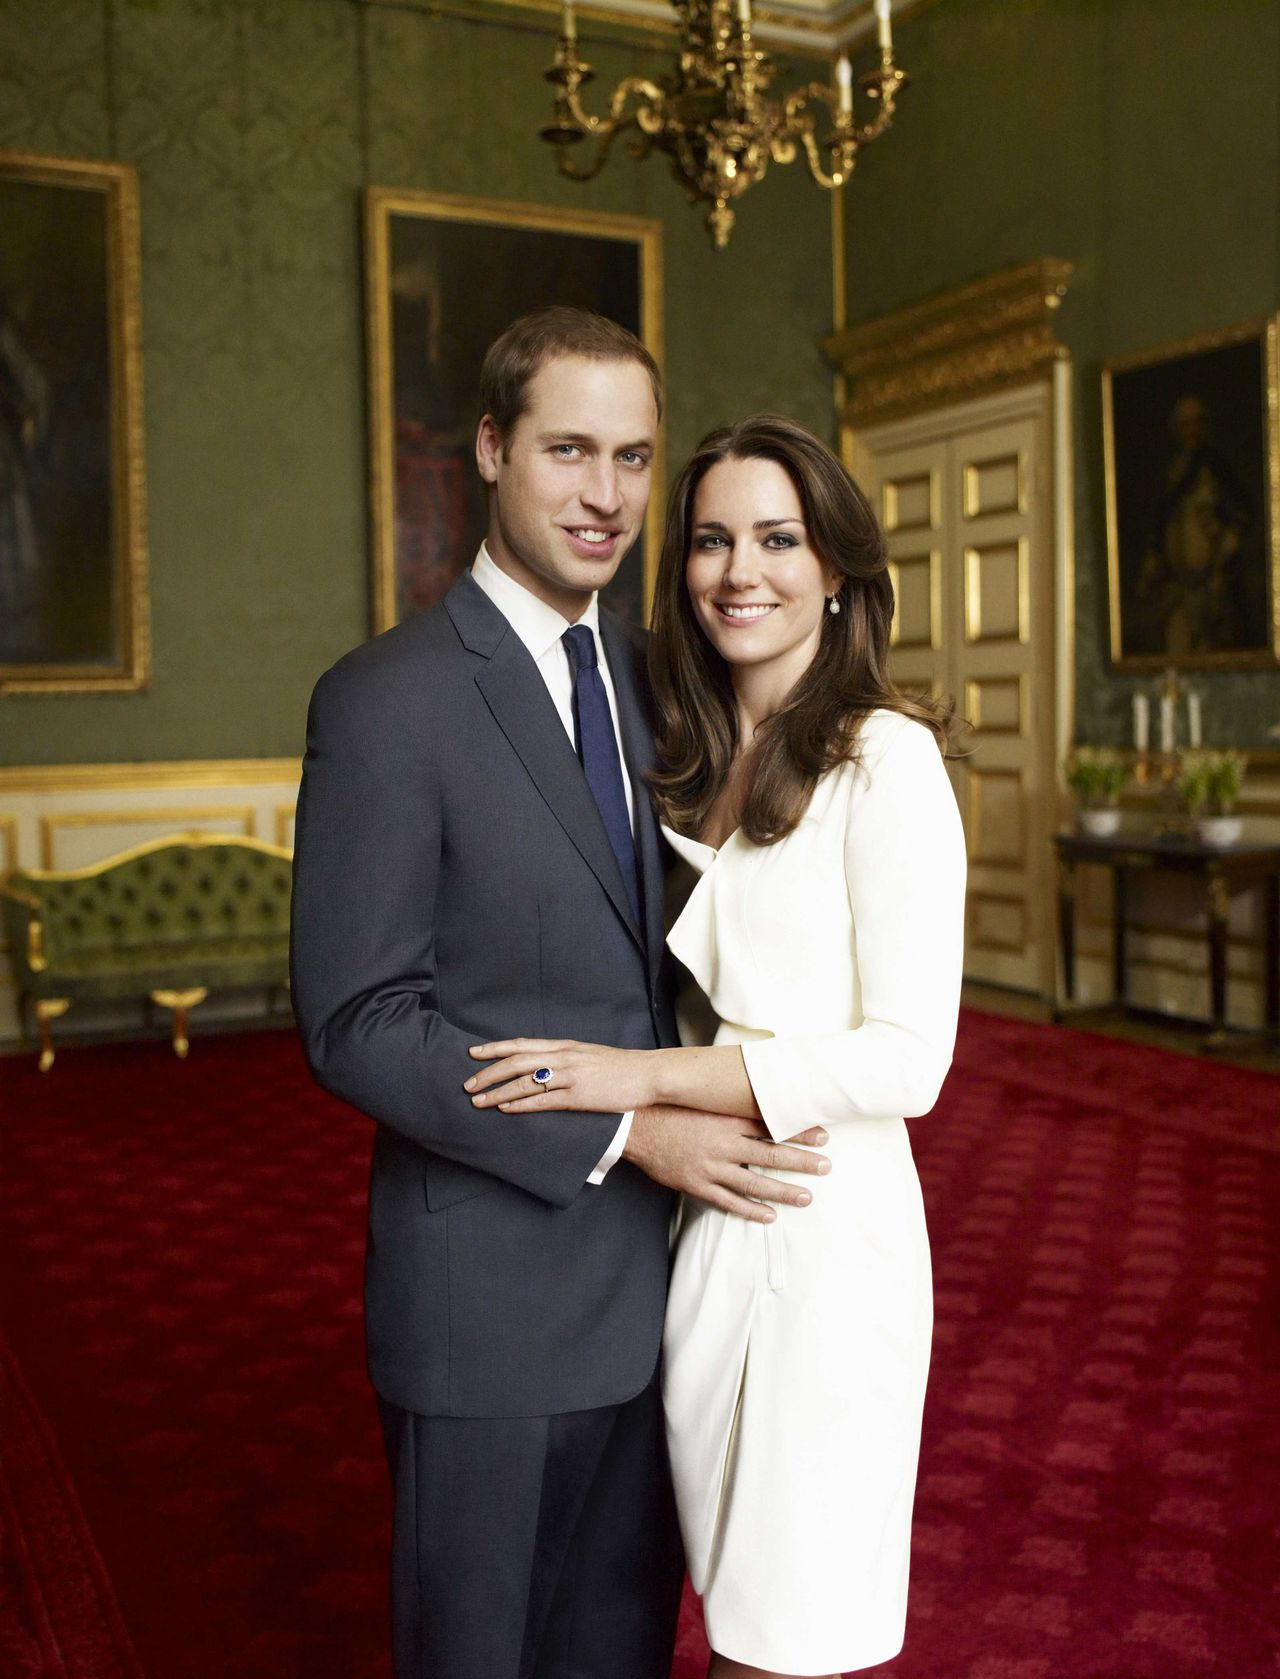 Britain's Prince William and Kate Middleton pose in one of two official engagement portraits, taken by photographer Mario Testino in the Council Chamber in the State Apartment at St James's Palace in London on November 25, 2010. The prince and his fiancee, Catherine Middleton, are to get married next year, the Buckingham Palace said last month. REUTERS/Copyright 2010 Mario Testino MANDATORY CREDIT (BRITAIN - Tags: ROYALS SOCIETY ENTERTAINMENT) NO COMMERCIAL OR BOOK SALES. NO SALES. NO ARCHIVES. FOR EDITORIAL USE ONLY. NOT FOR SALE FOR MARKETING OR ADVERTISING CAMPAIGNS. THIS IMAGE HAS BEEN SUPPLIED BY A THIRD PARTY. IT IS DISTRIBUTED, EXACTLY AS RECEIVED BY REUTERS, AS A SERVICE TO CLIENTS. NO THIRD PARTY SALES. NOT FOR USE BY REUTERS THIRD PARTY DISTRIBUTORS